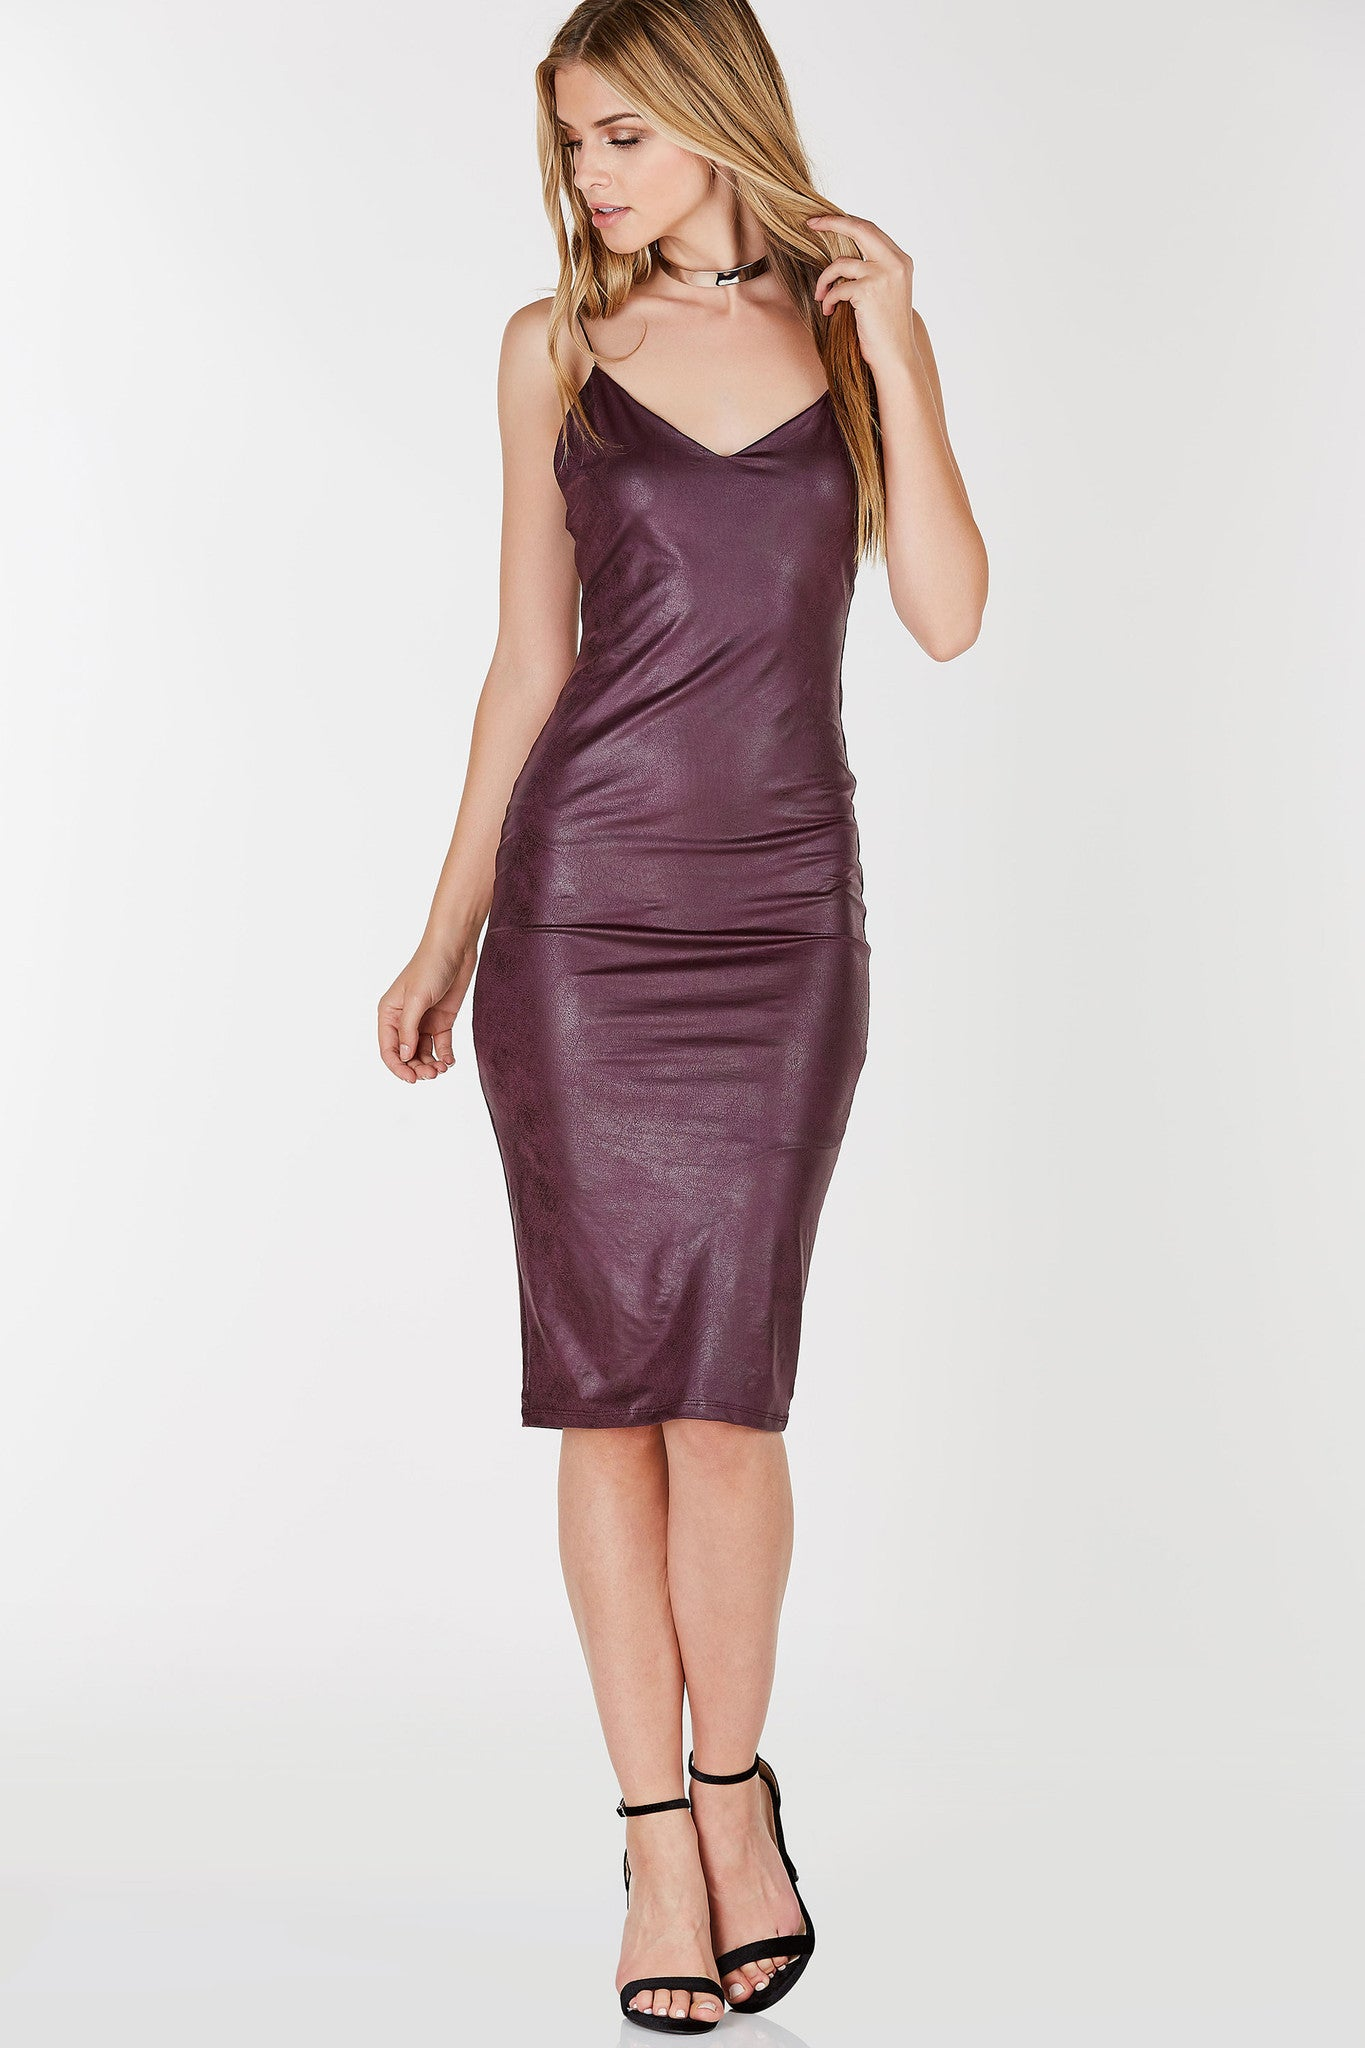 Fully lined with straight hem. V-neckline and cord shoulder straps. Bodycon fit with faux leather finish.